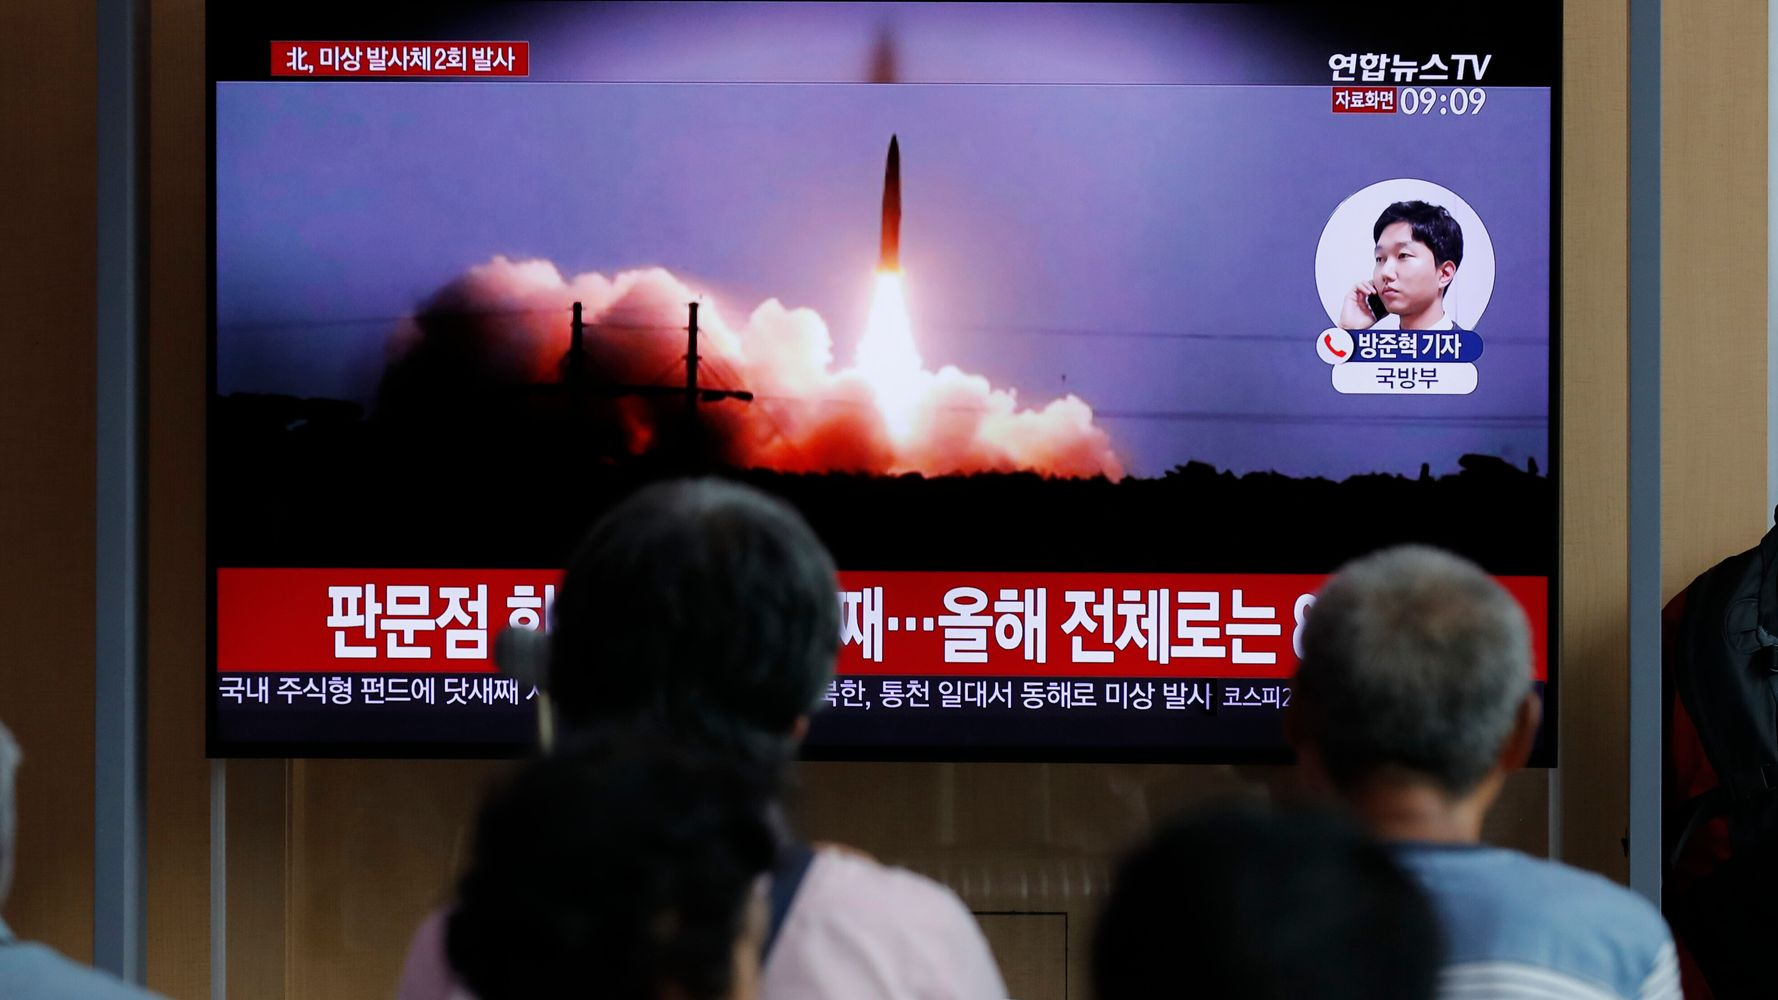 South Korea Military Says North Korea Fired More Projectiles Into Sea